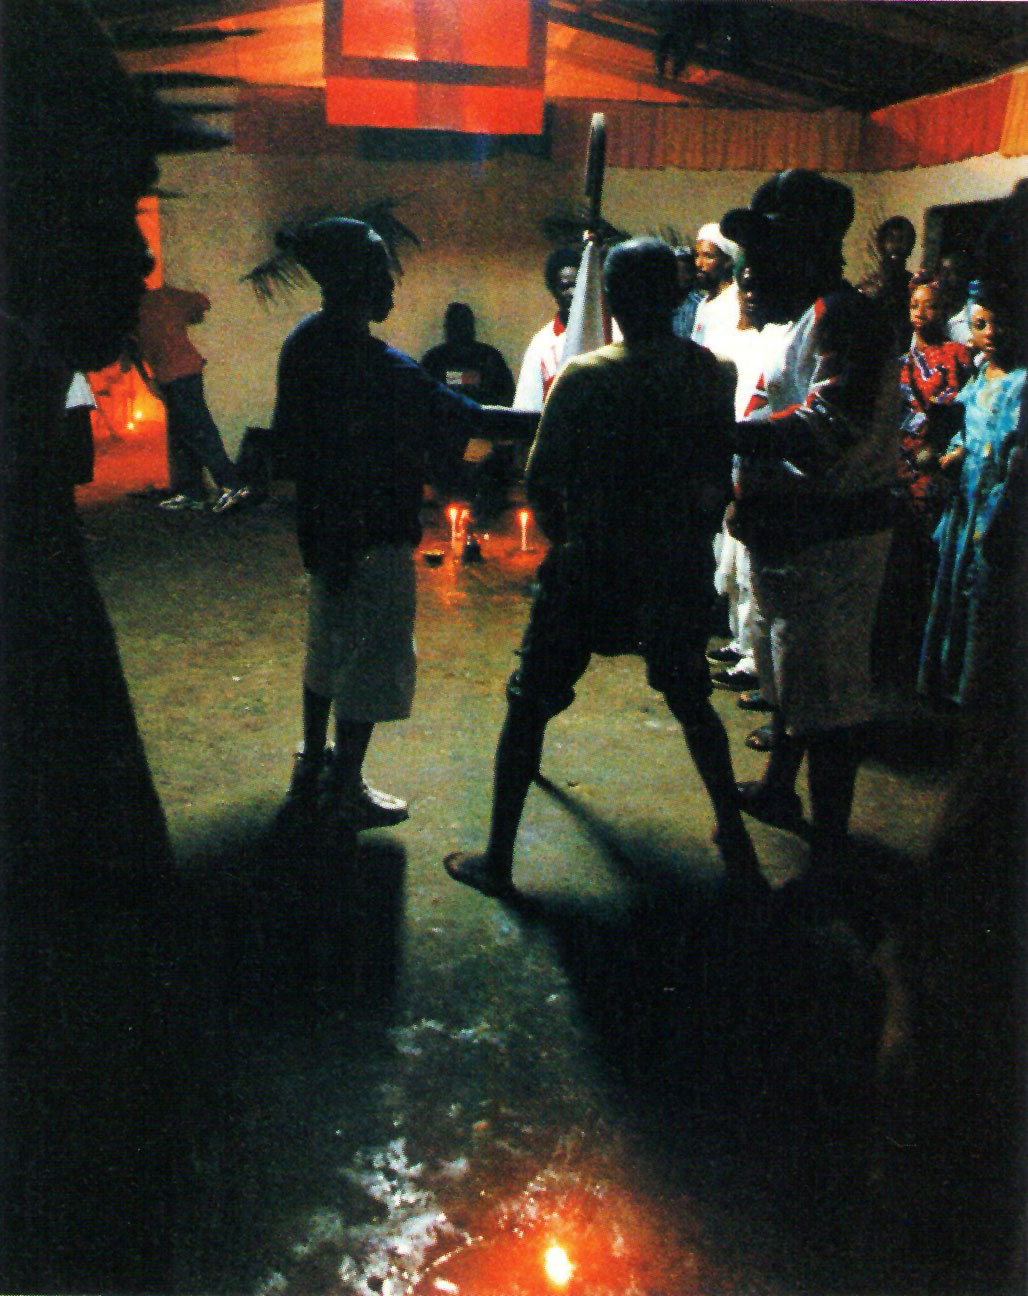 Shango makes his surprise appearance inside the shrine, having taken spirit possession outside in the storm. One of the chant leaders, left, and a master drummer help prepare him for the rest of his spiritual manifestion as Shango. Photograph by Horace Ové